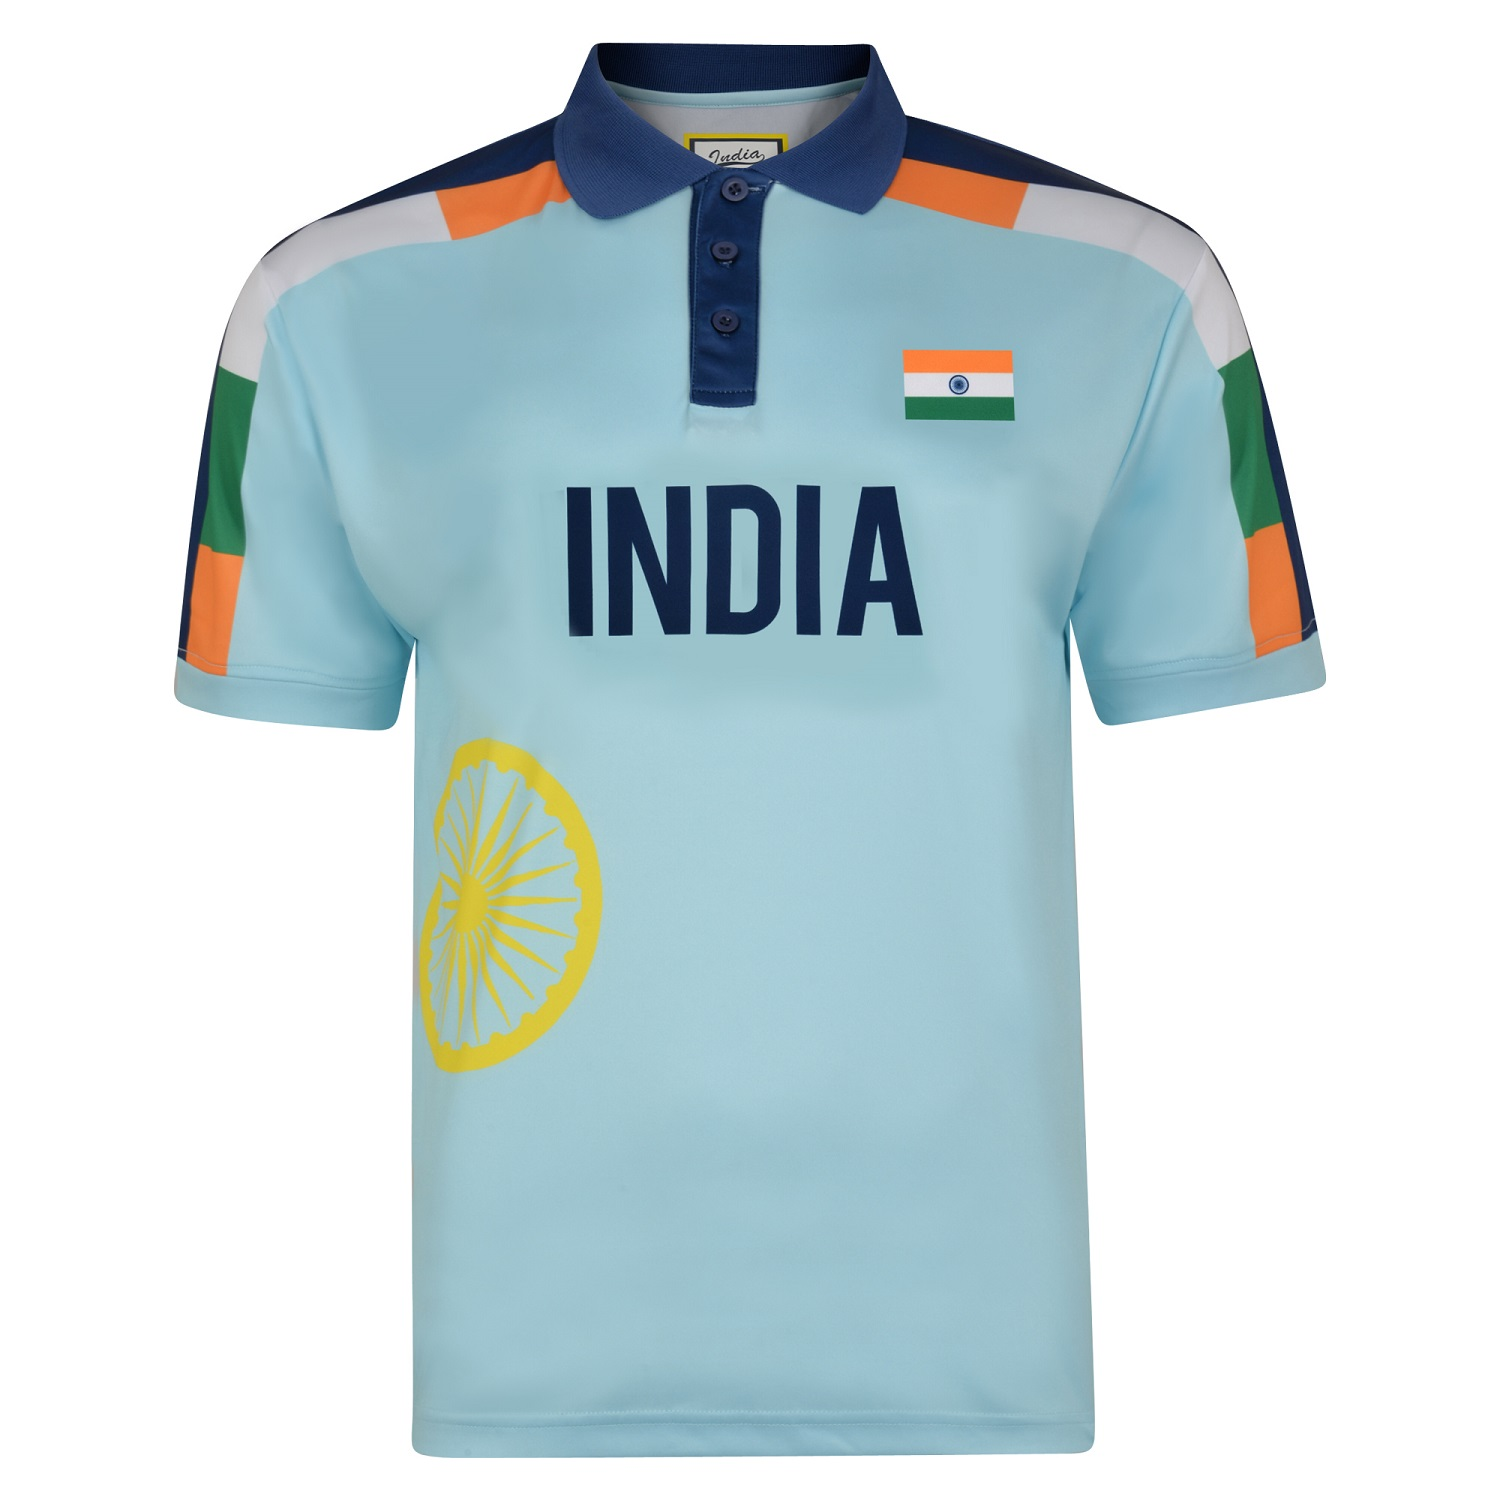 finest selection c6dd7 e66b0 retro indian jersey